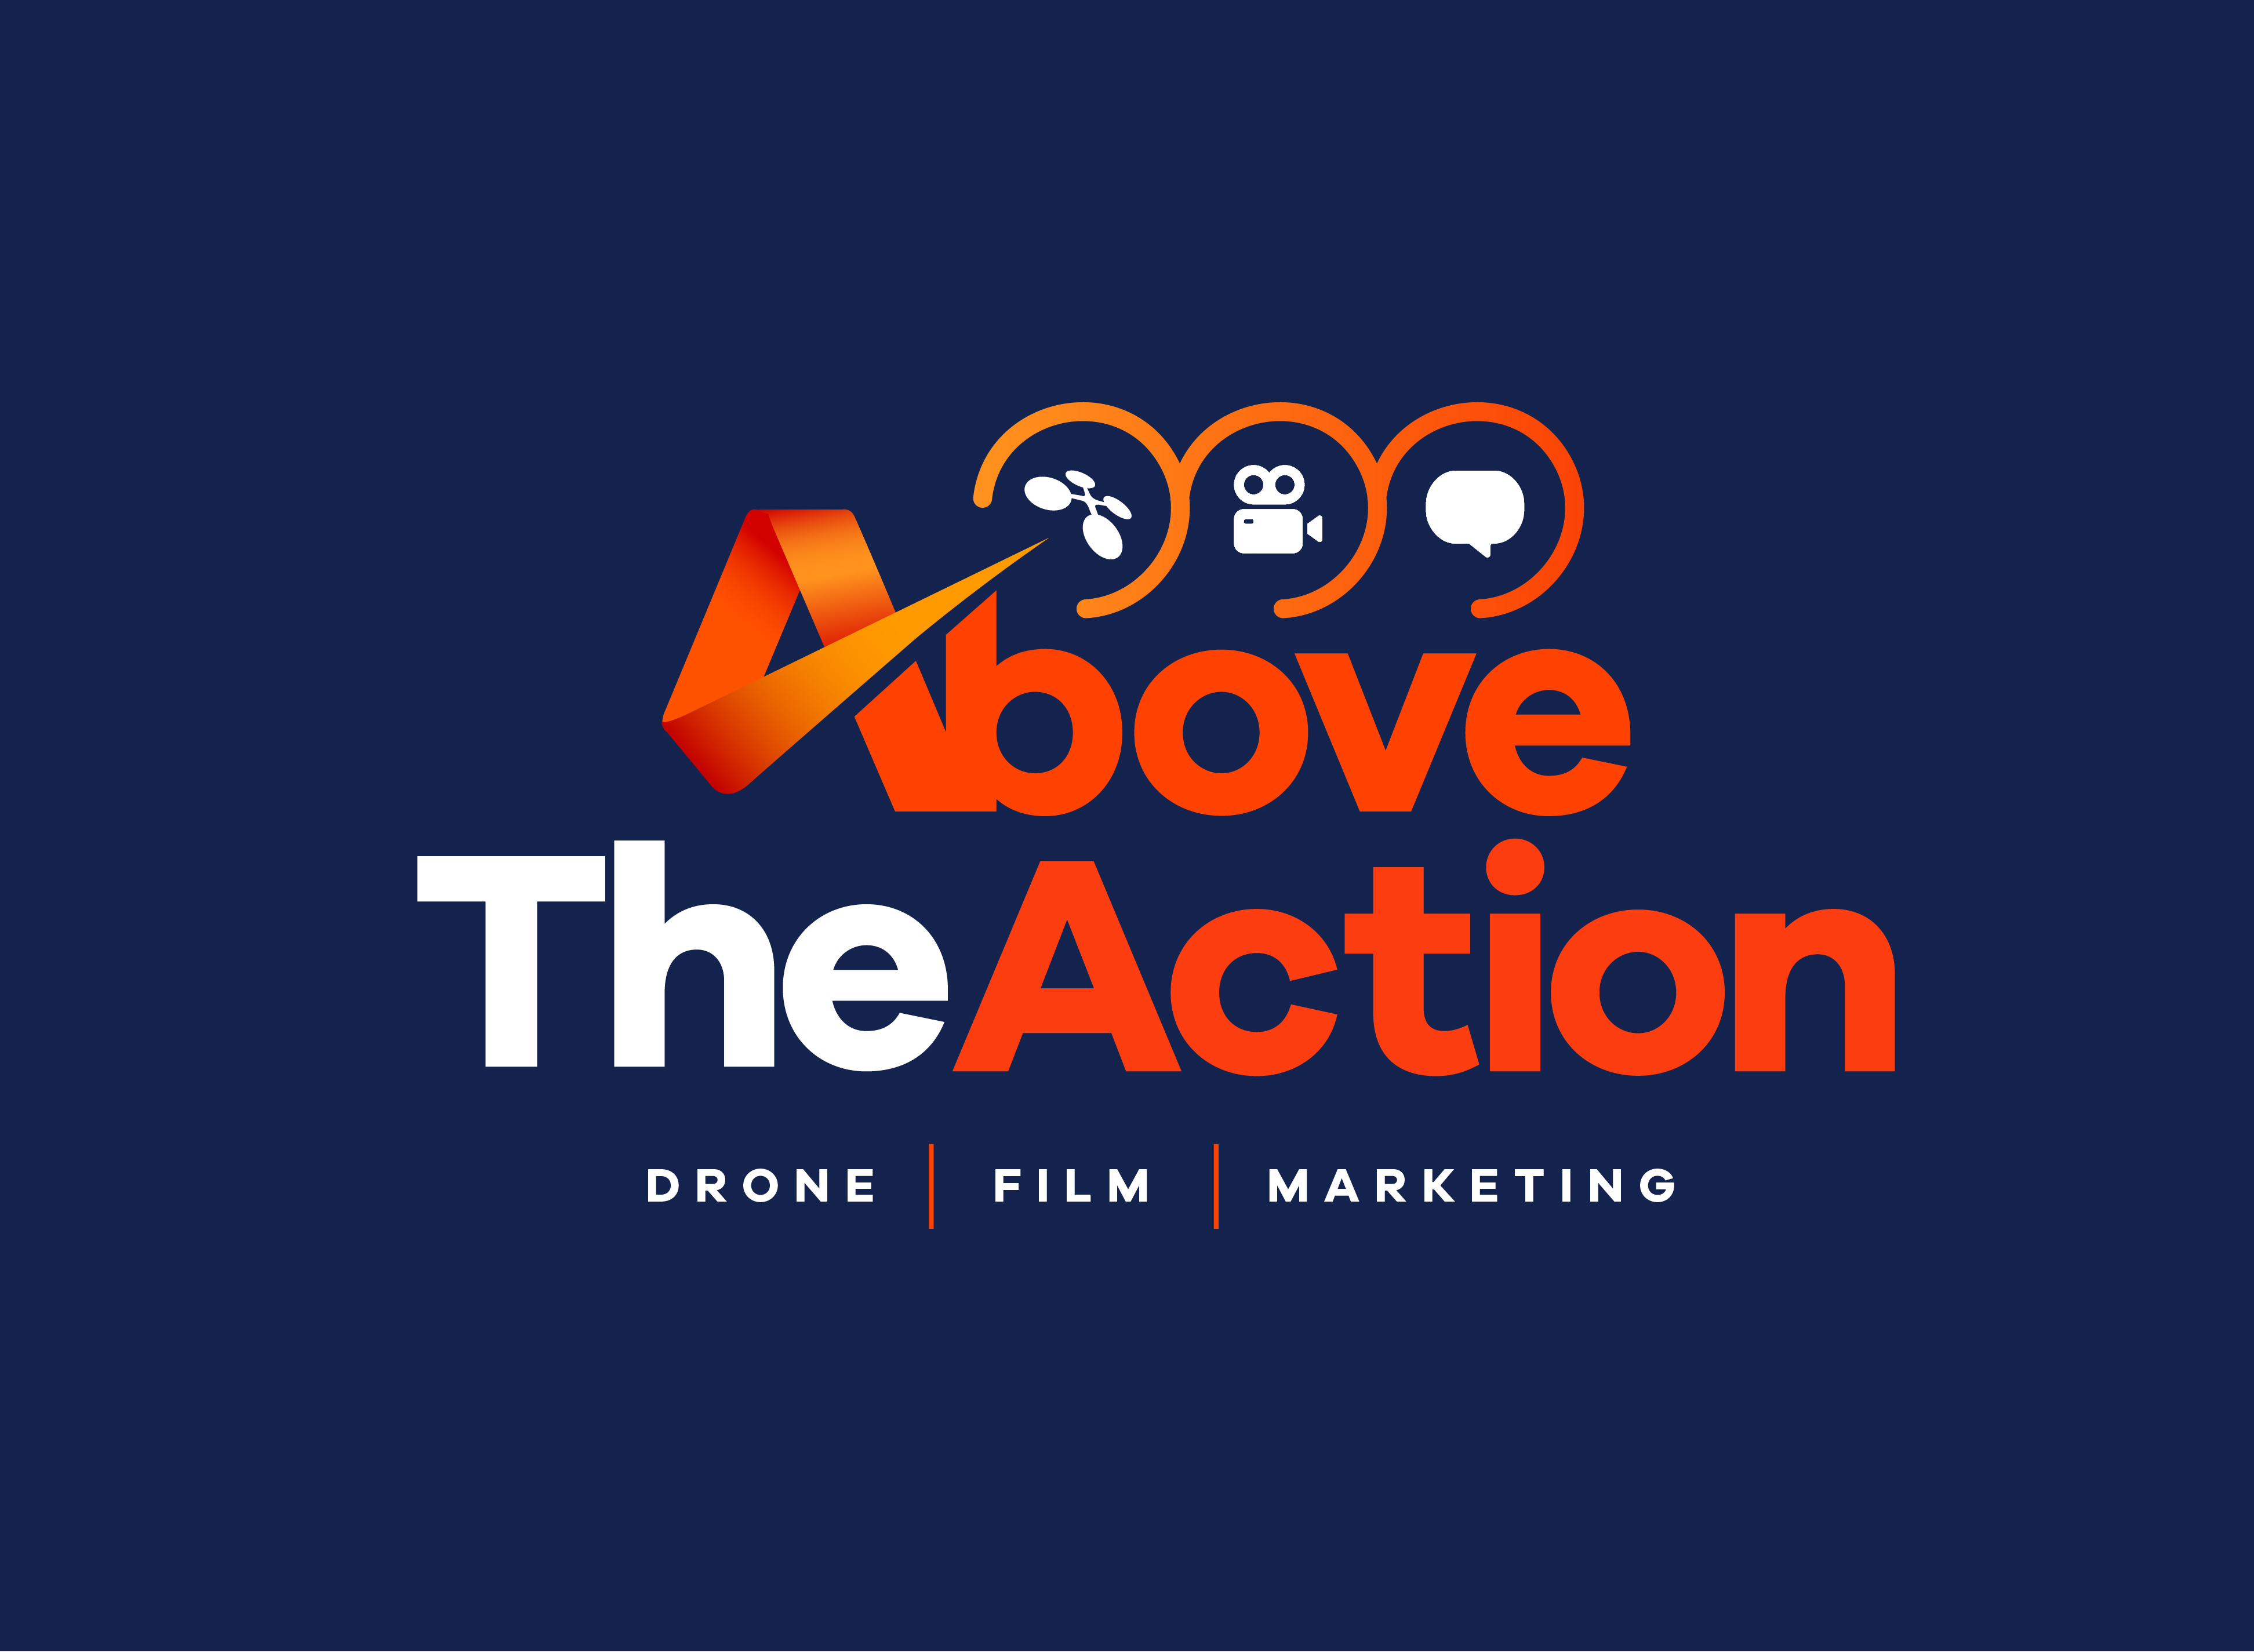 Above The Action North East Video Marketing